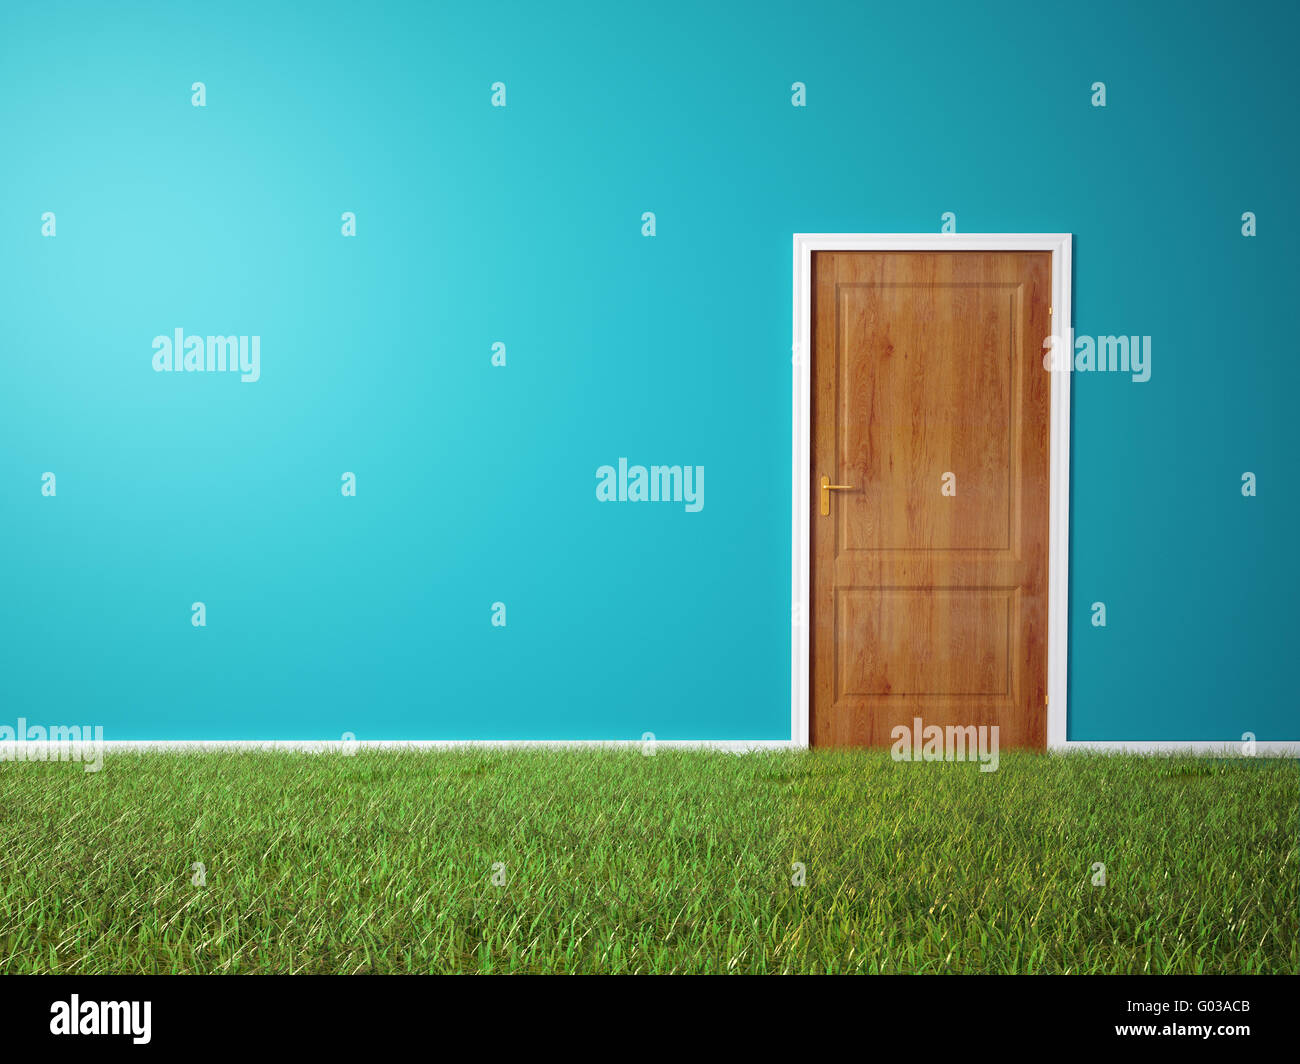 Room with wooden door and a grass covered floor - Stock Image